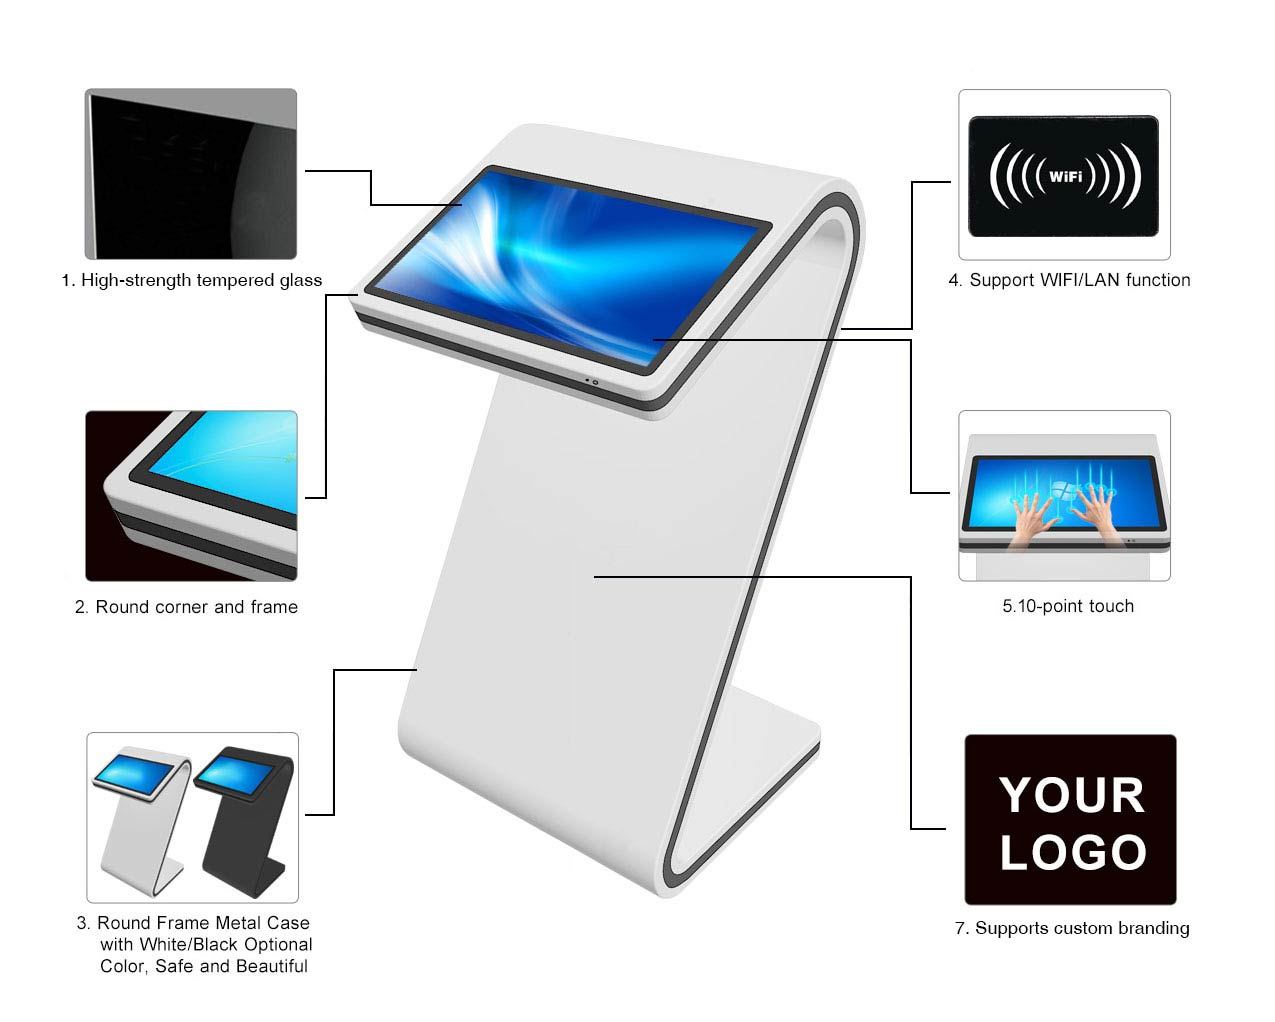 angled s touch kiosk features